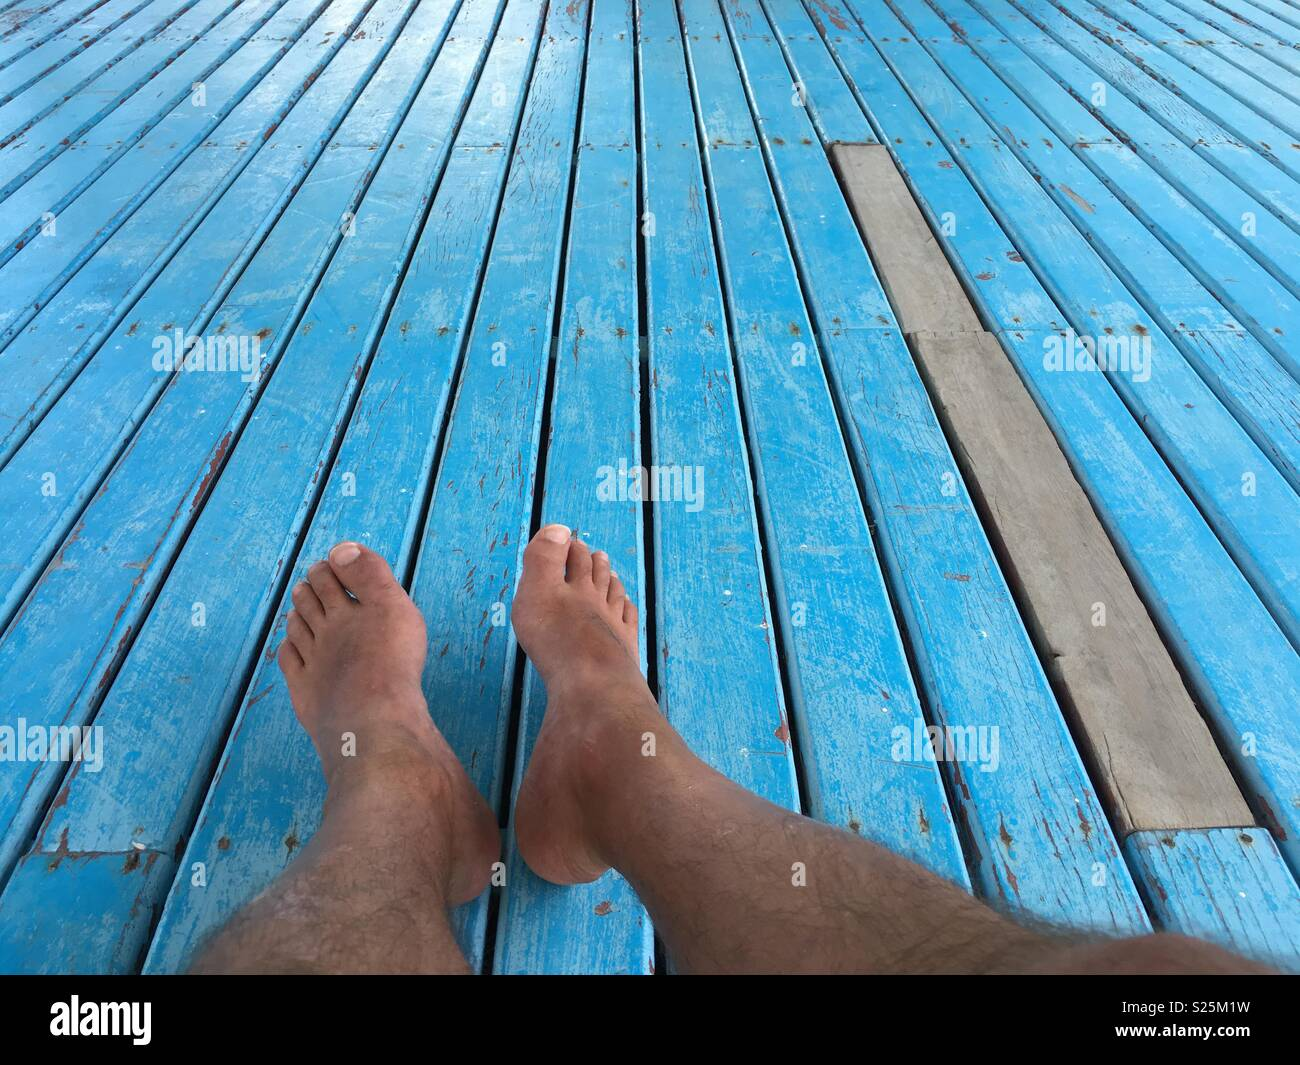 Bare foot - Stock Image